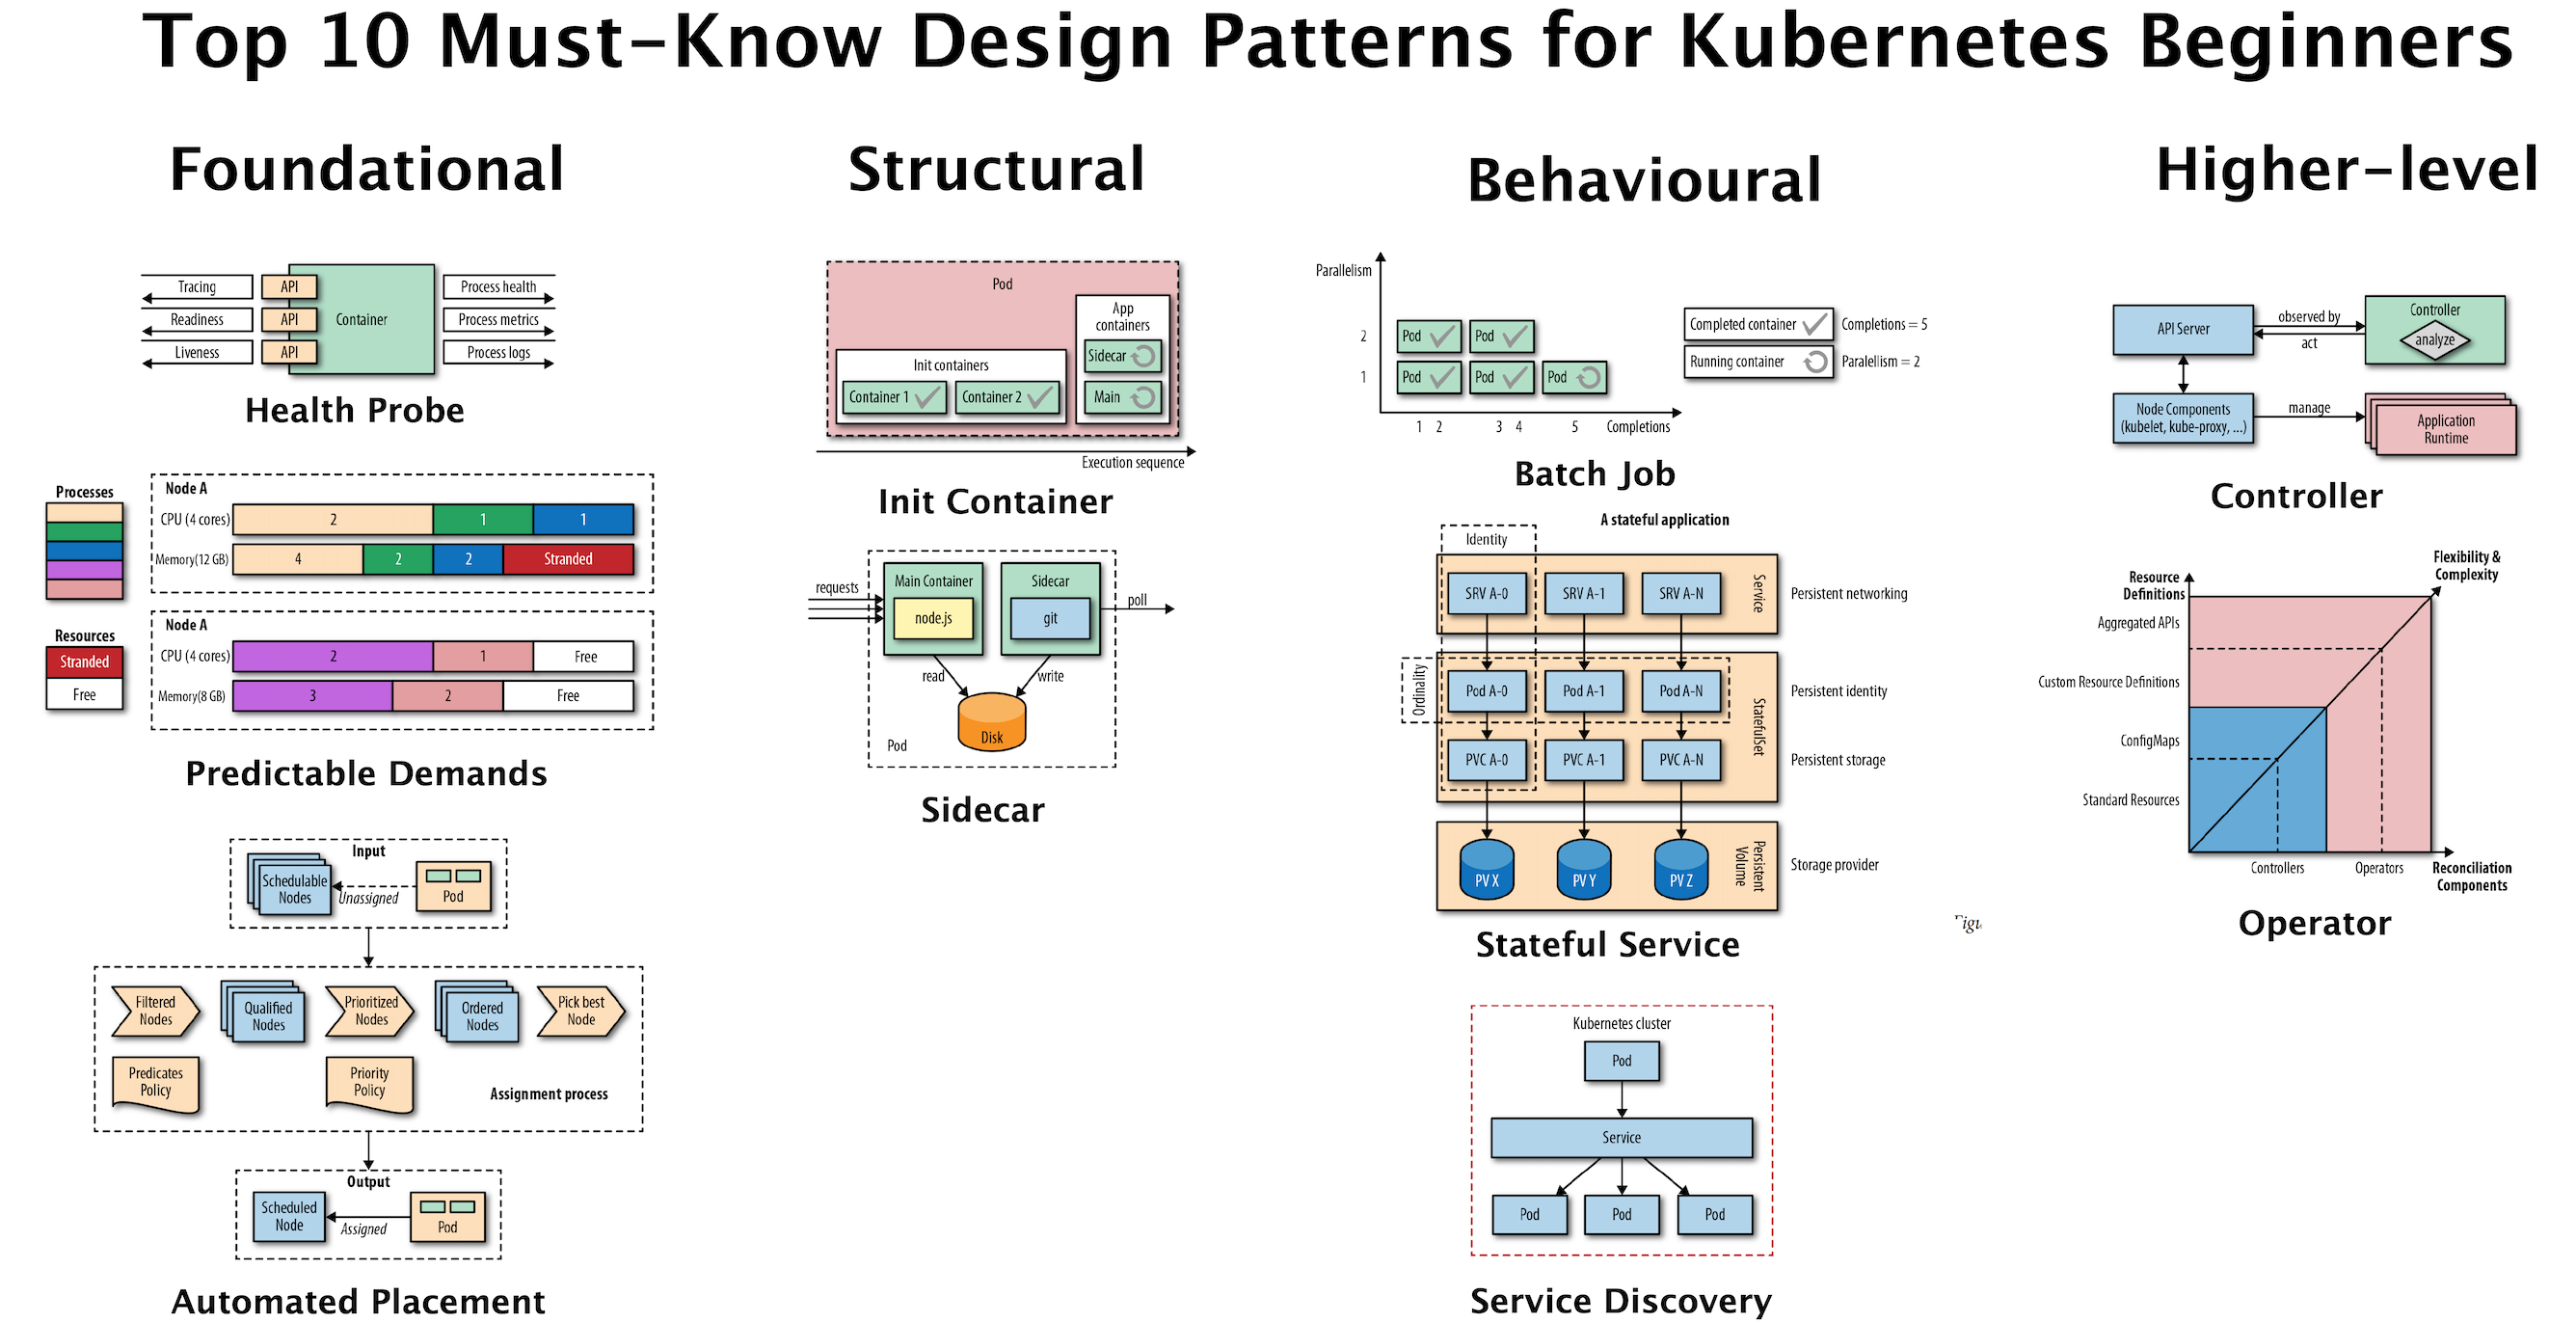 Top 10 must-know Kubernetes design patterns